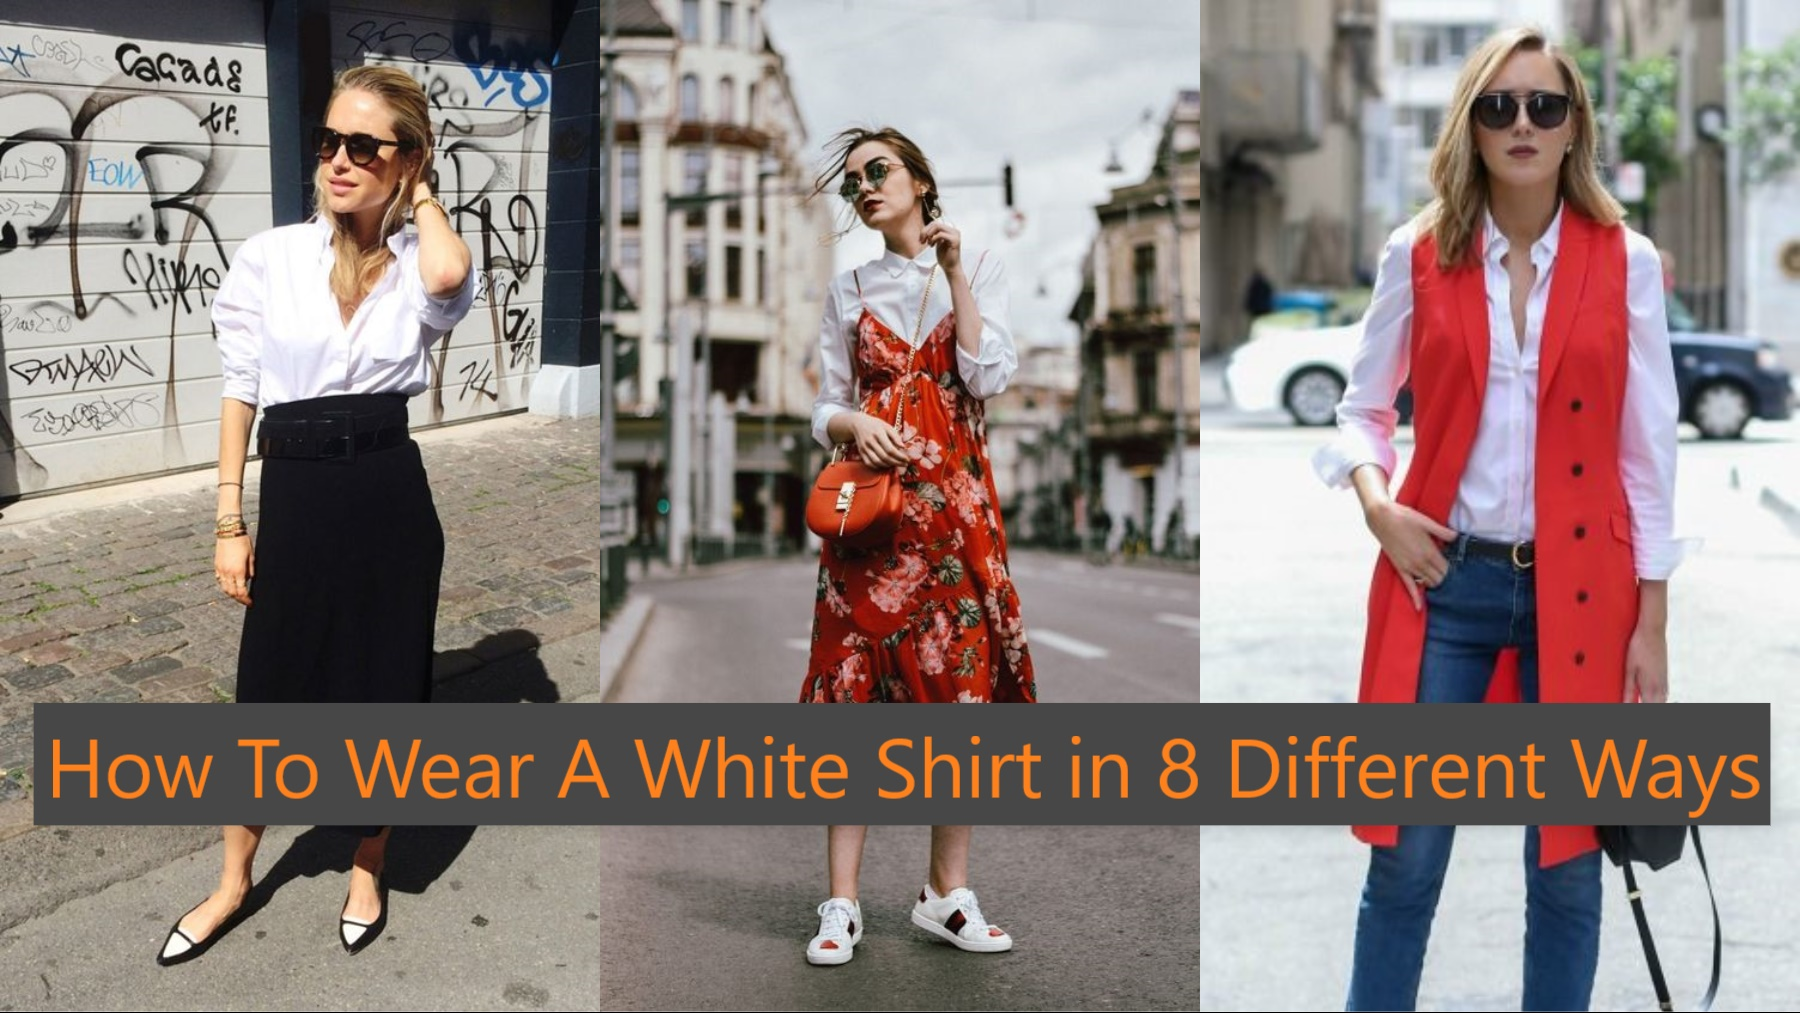 How To Wear A White Shirt in 8 Different Ways ...